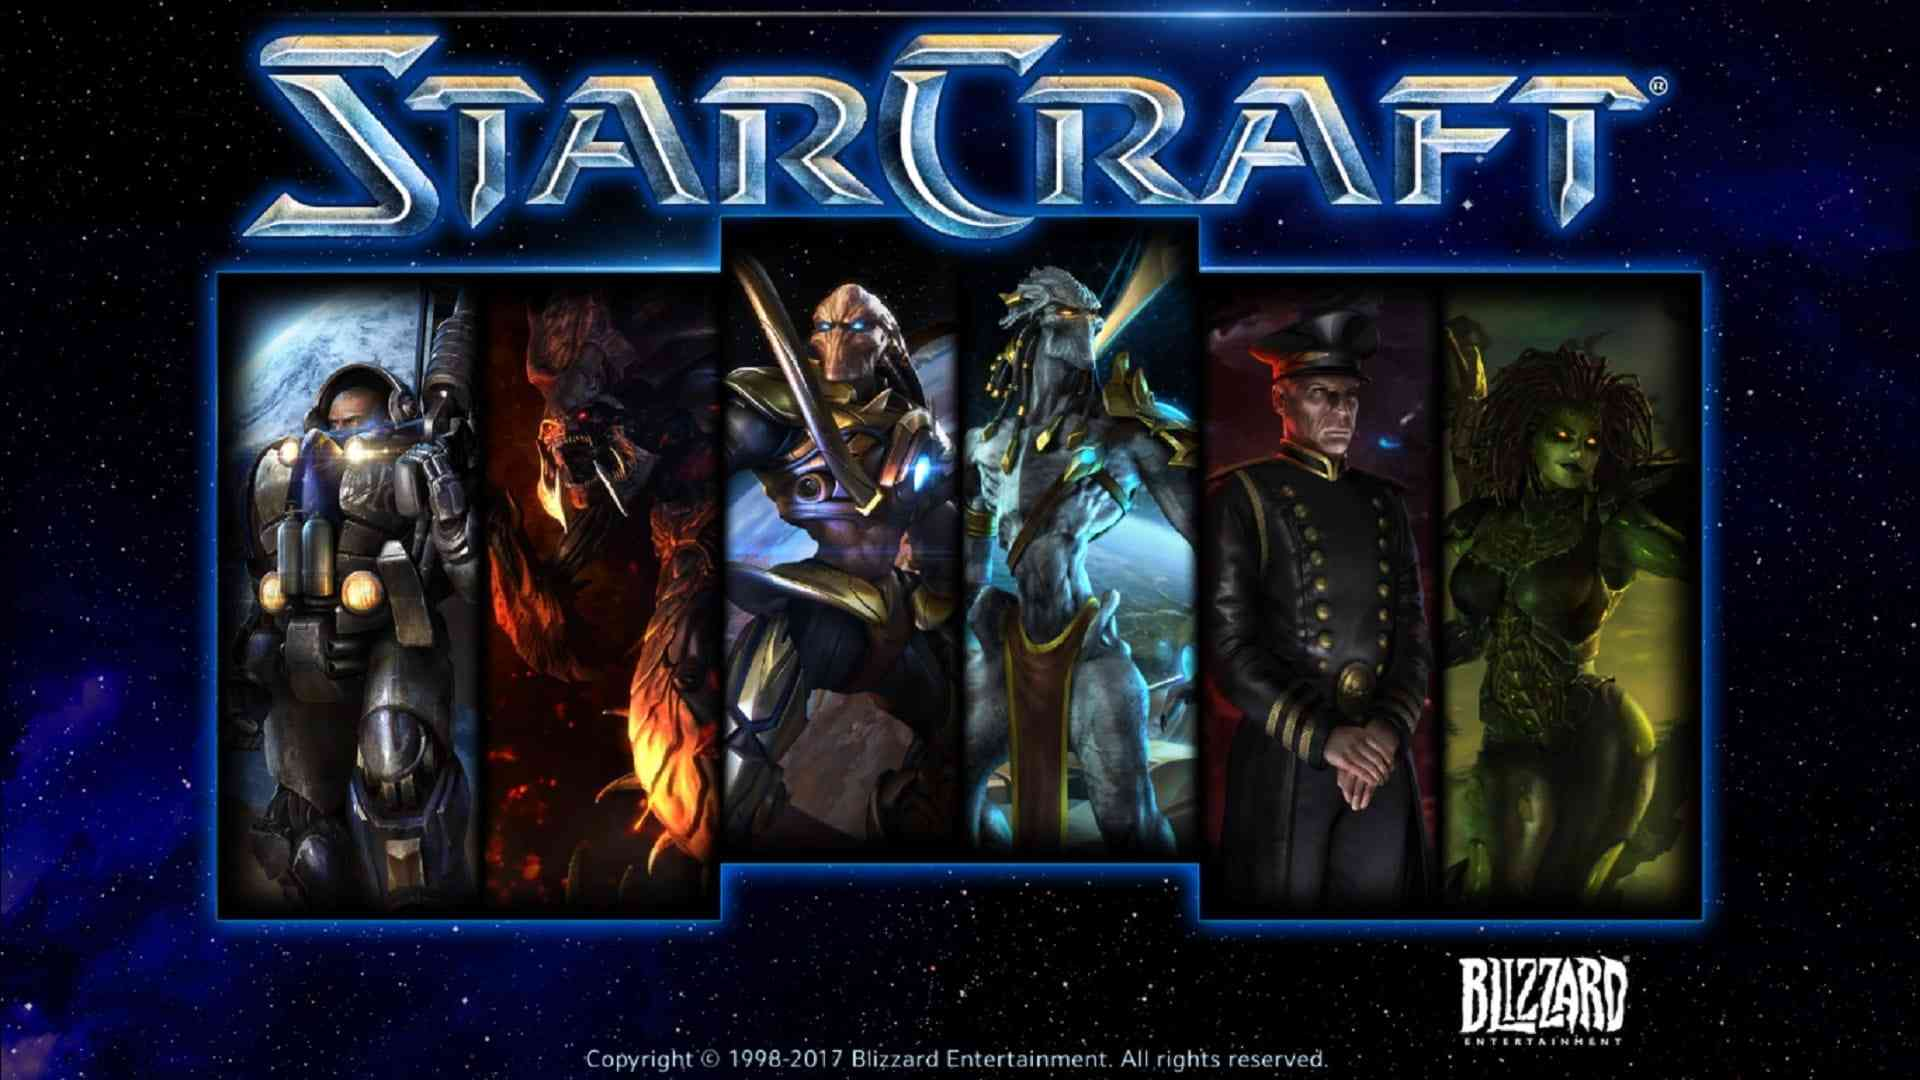 StarCraft First Person Shooter Has Been Canceled By Blizzard So They